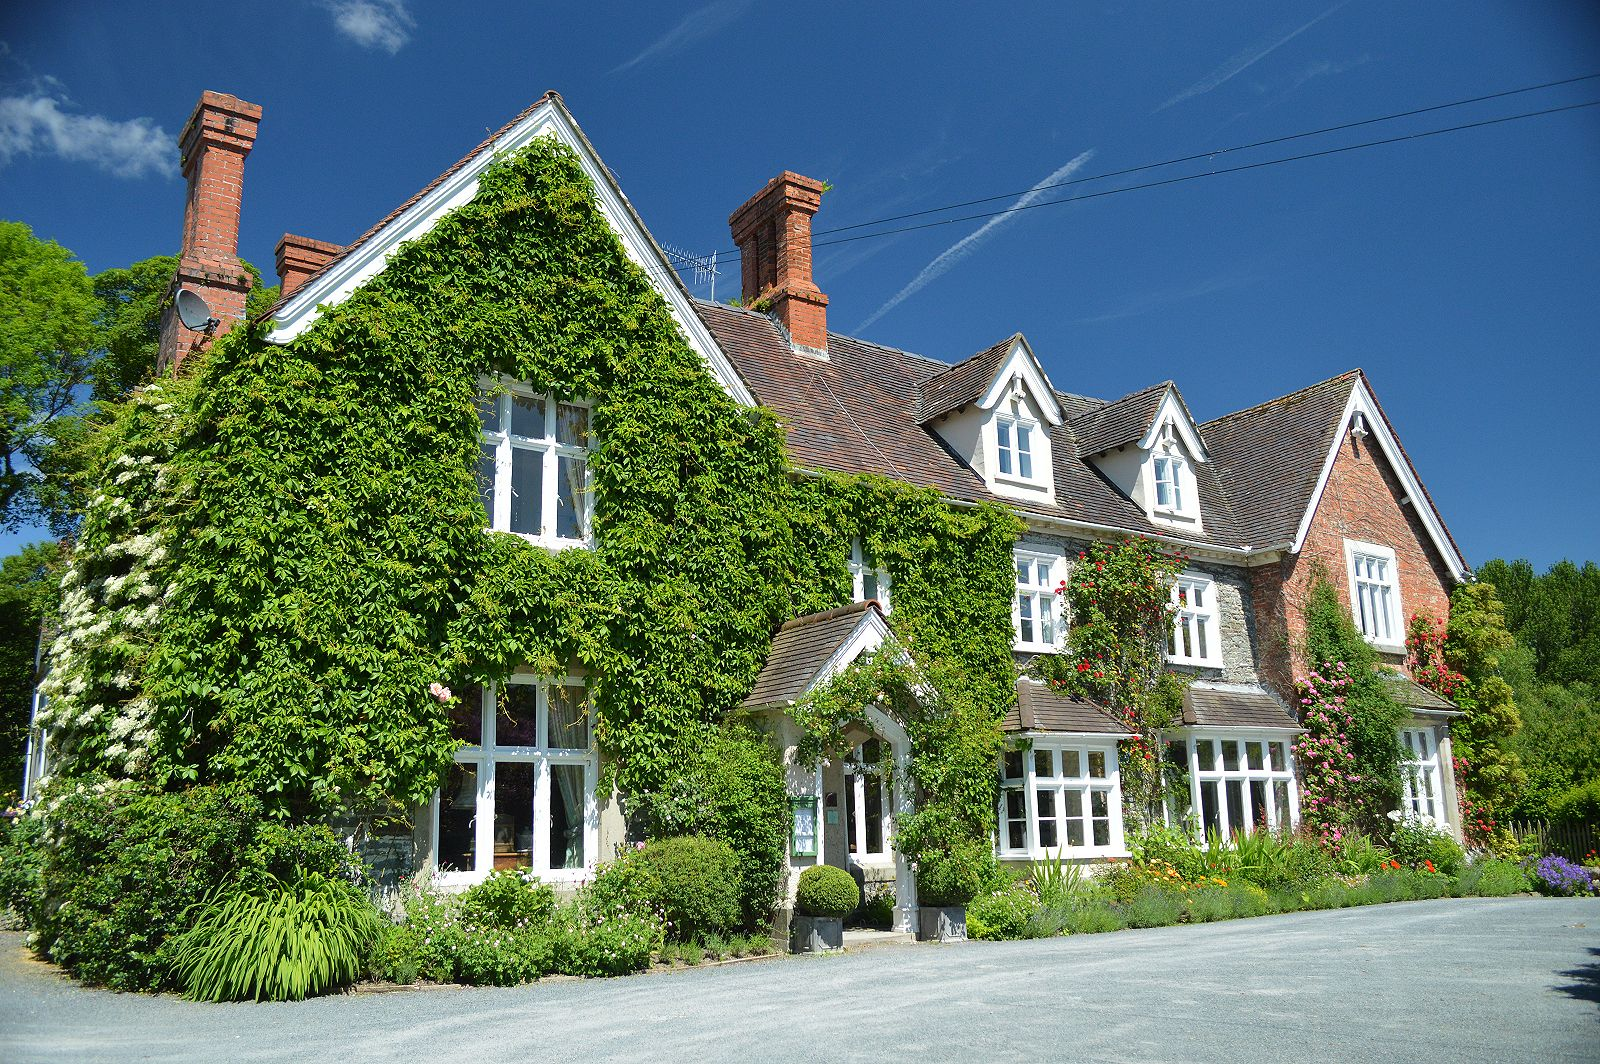 Country house hotel near knighton in midwales minutes from